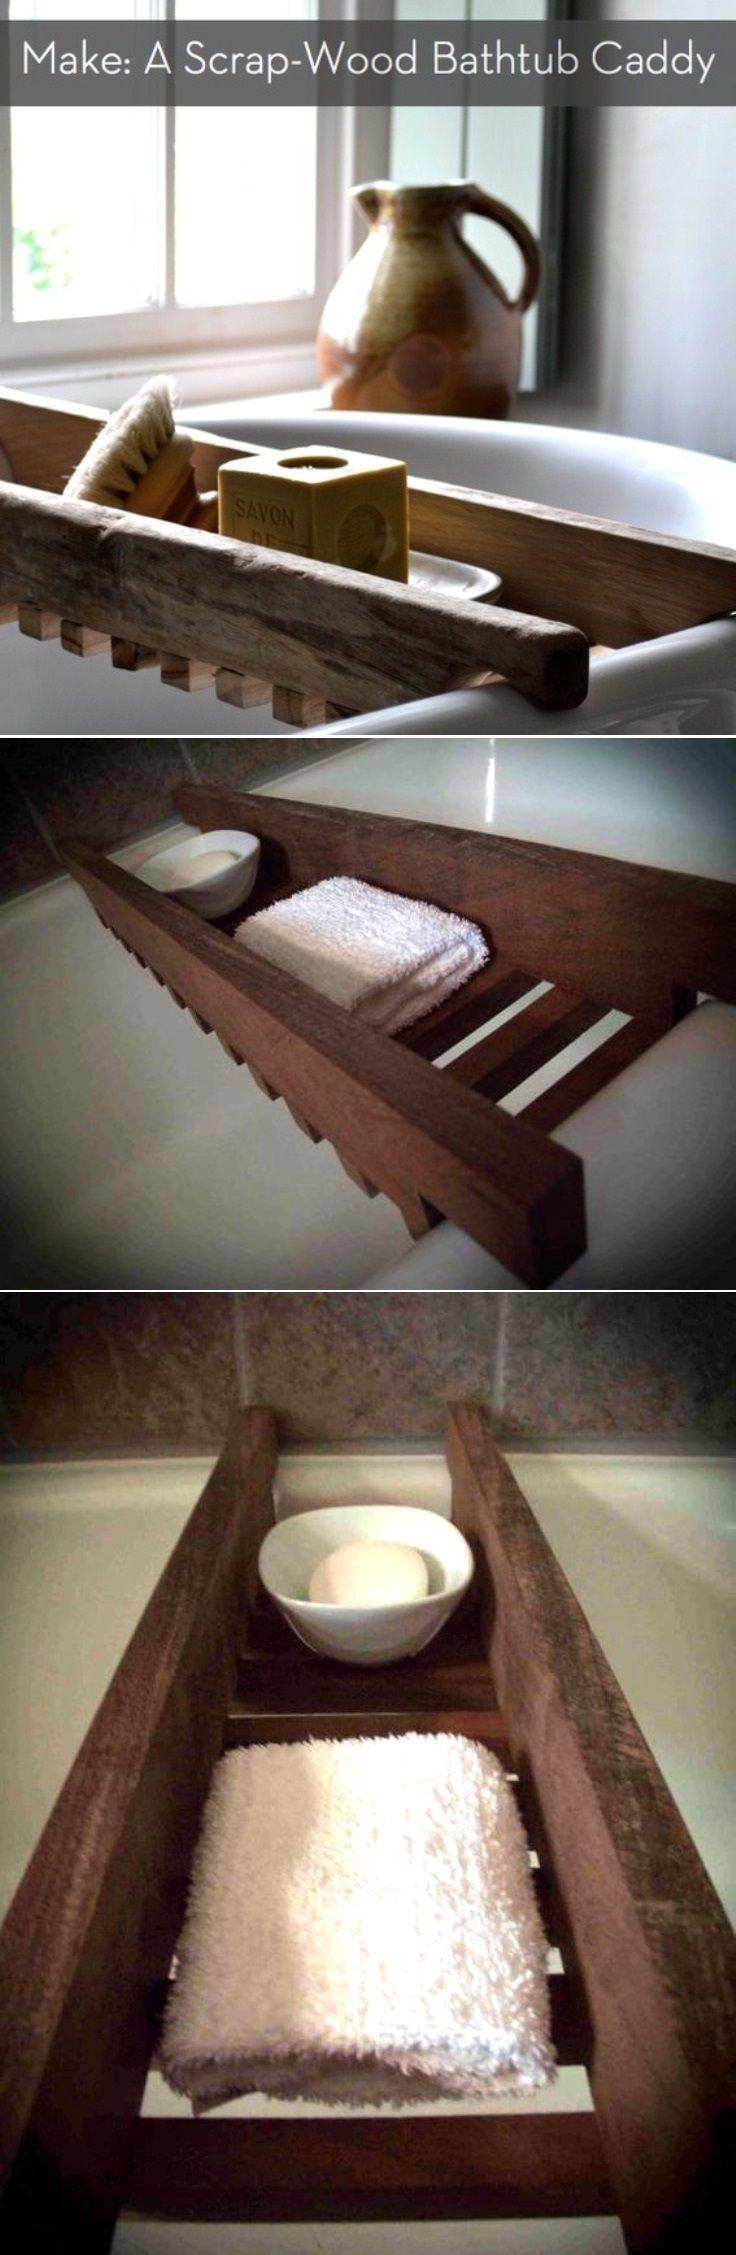 Scrap Wood Bathtub Caddy - Best DIY Shower Caddies